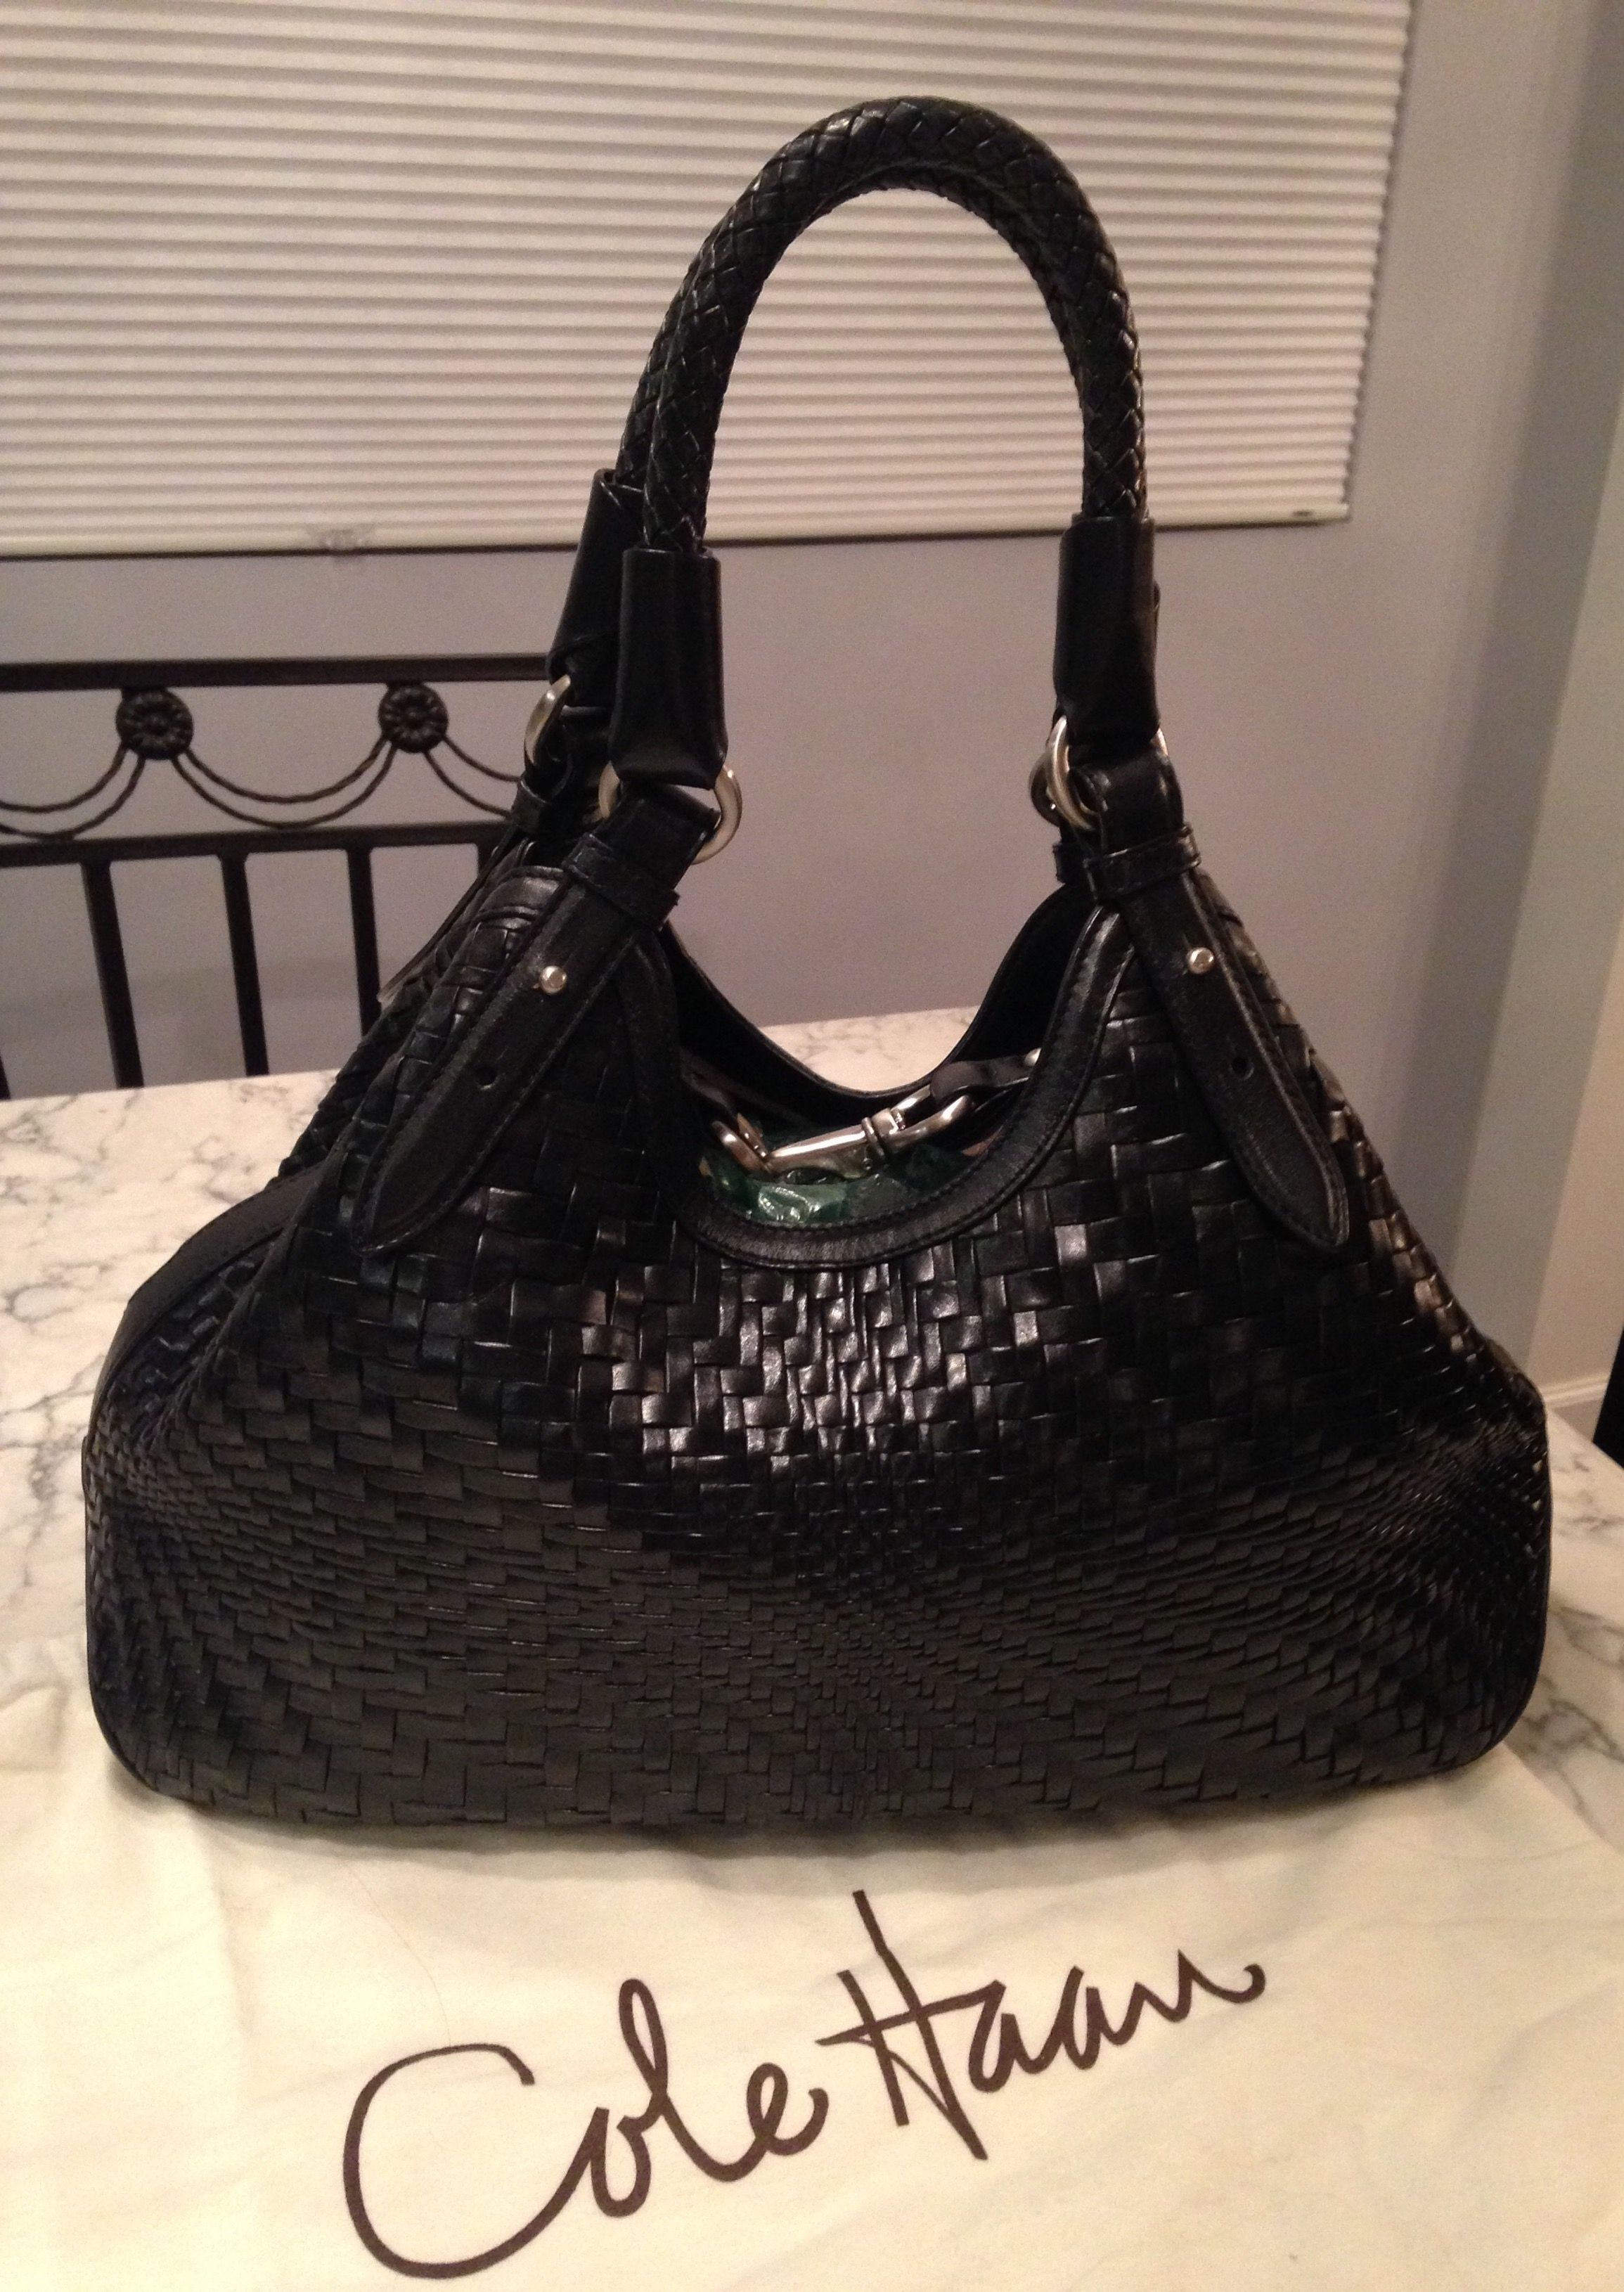 99a4ca1c963f Genevieve Like New Woven Weave Hobo Handbag Purse Black Leather Tote ...